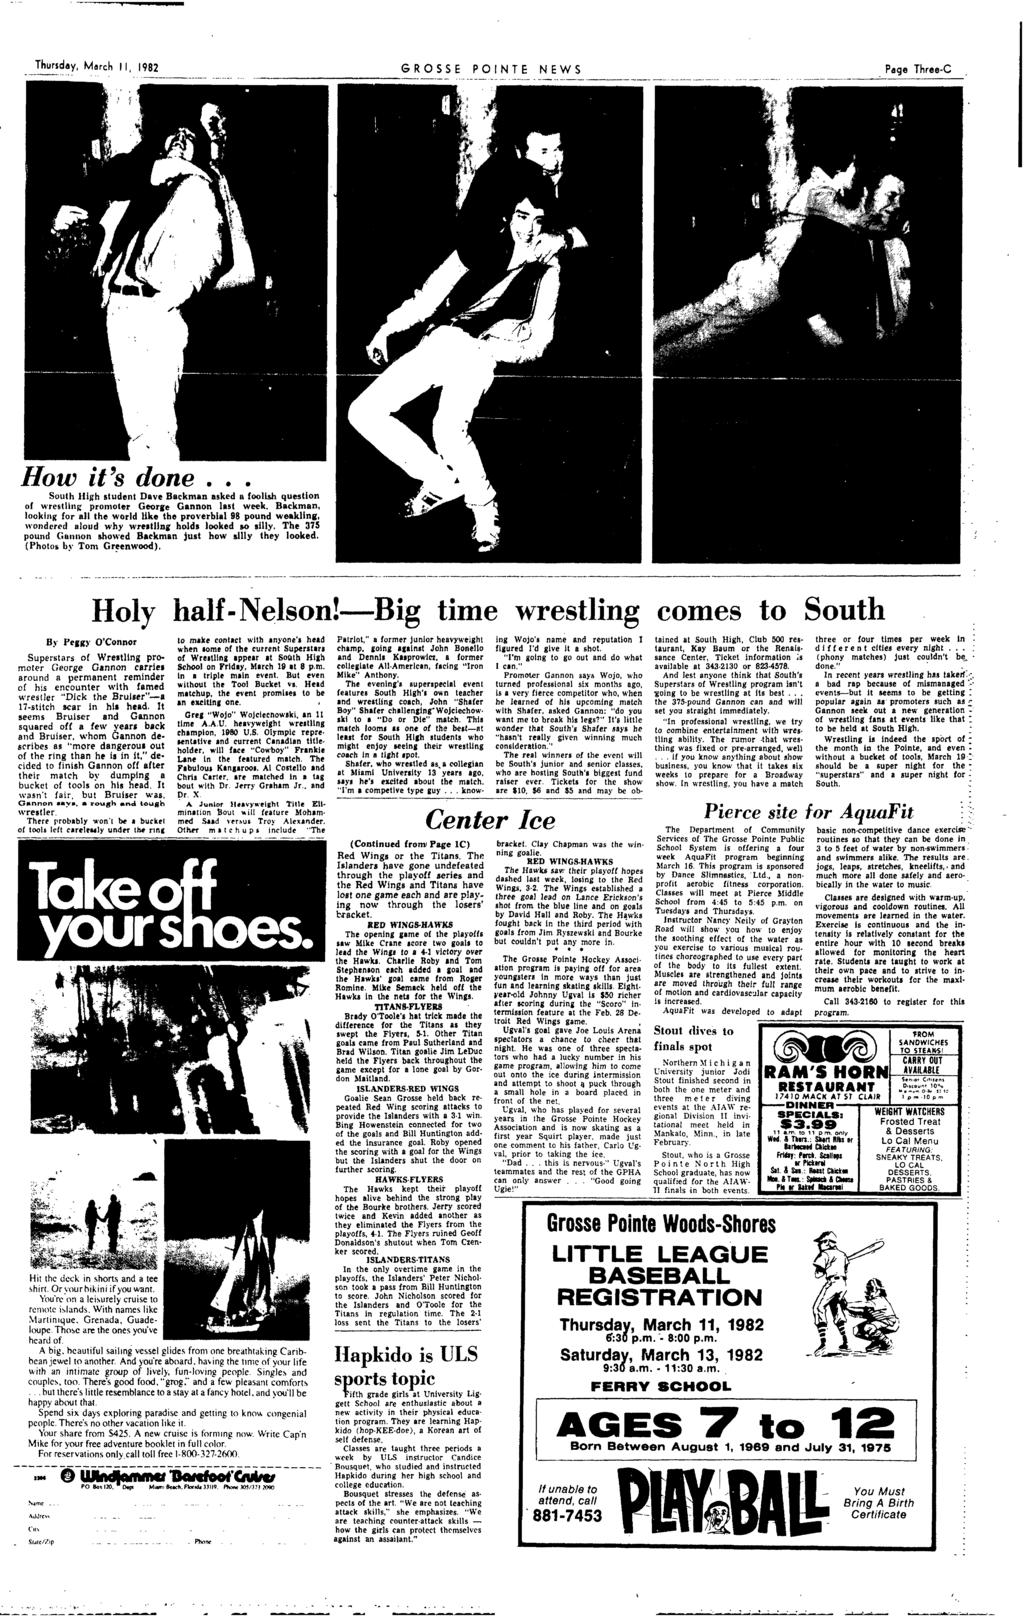 Rosse pointe farms county stand off shakes thursday mlrch 1982 grosse ponte news page threec how its done south high tudent fandeluxe Image collections